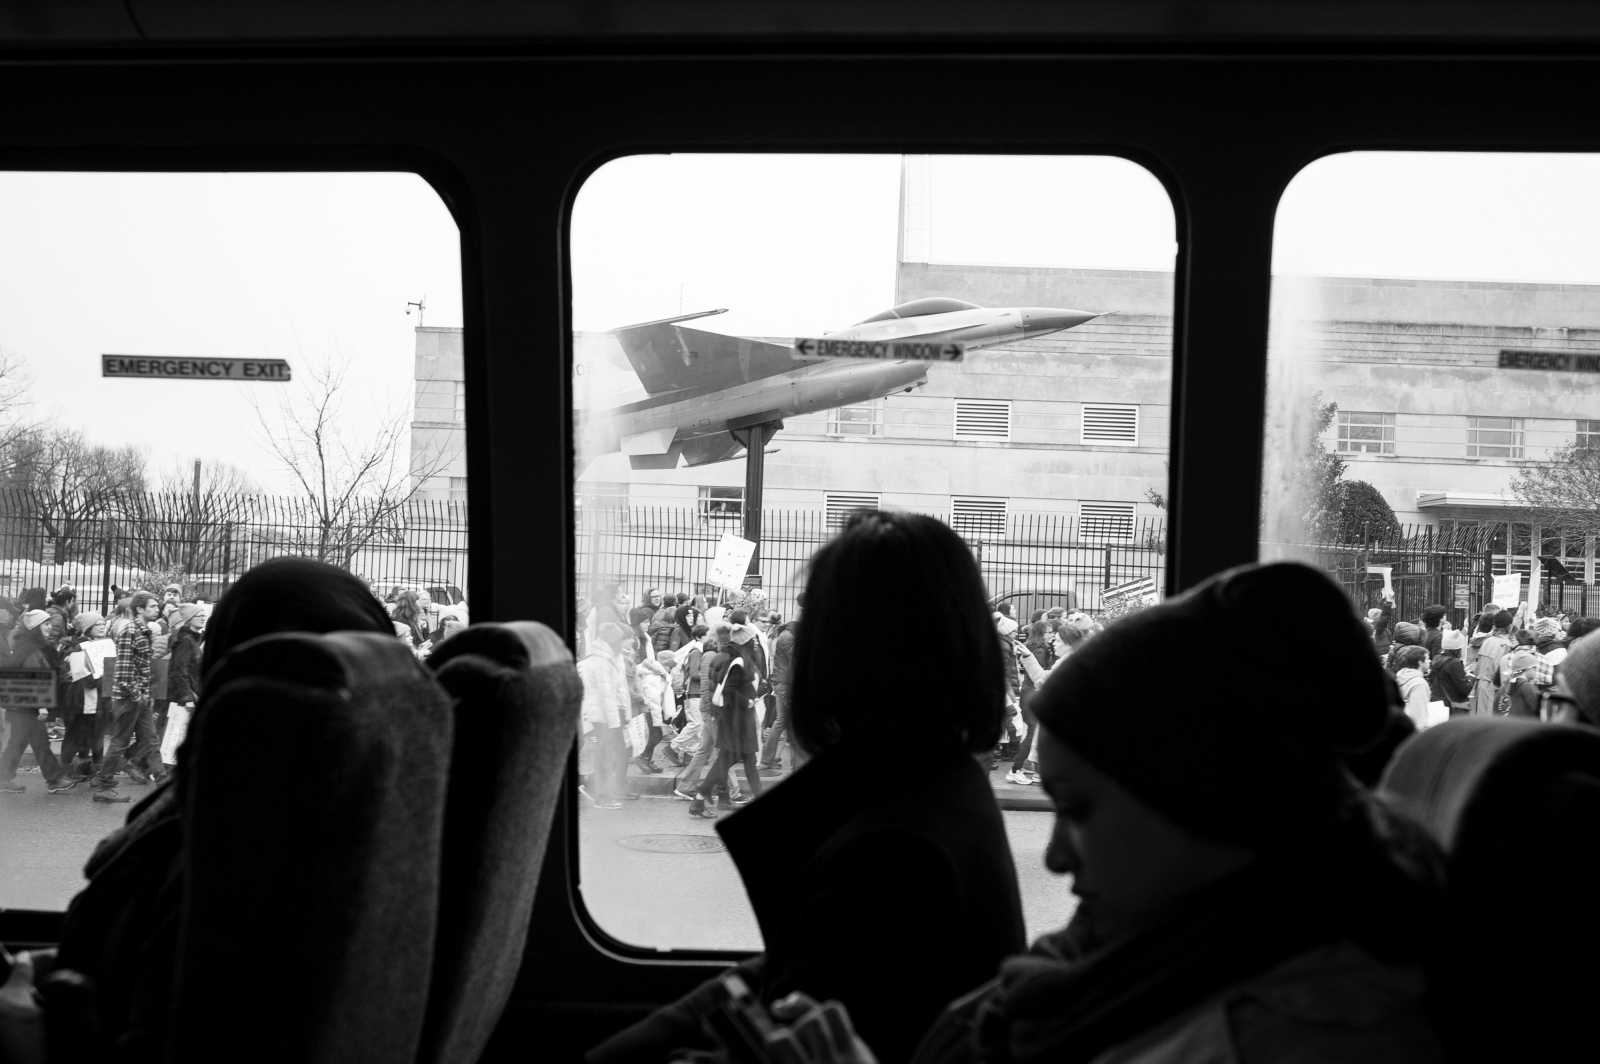 A bus of activists, many of whom are Arab American, ride a bus from New York City to Washington D.C. for the Women's March Jan. 21, 2017.